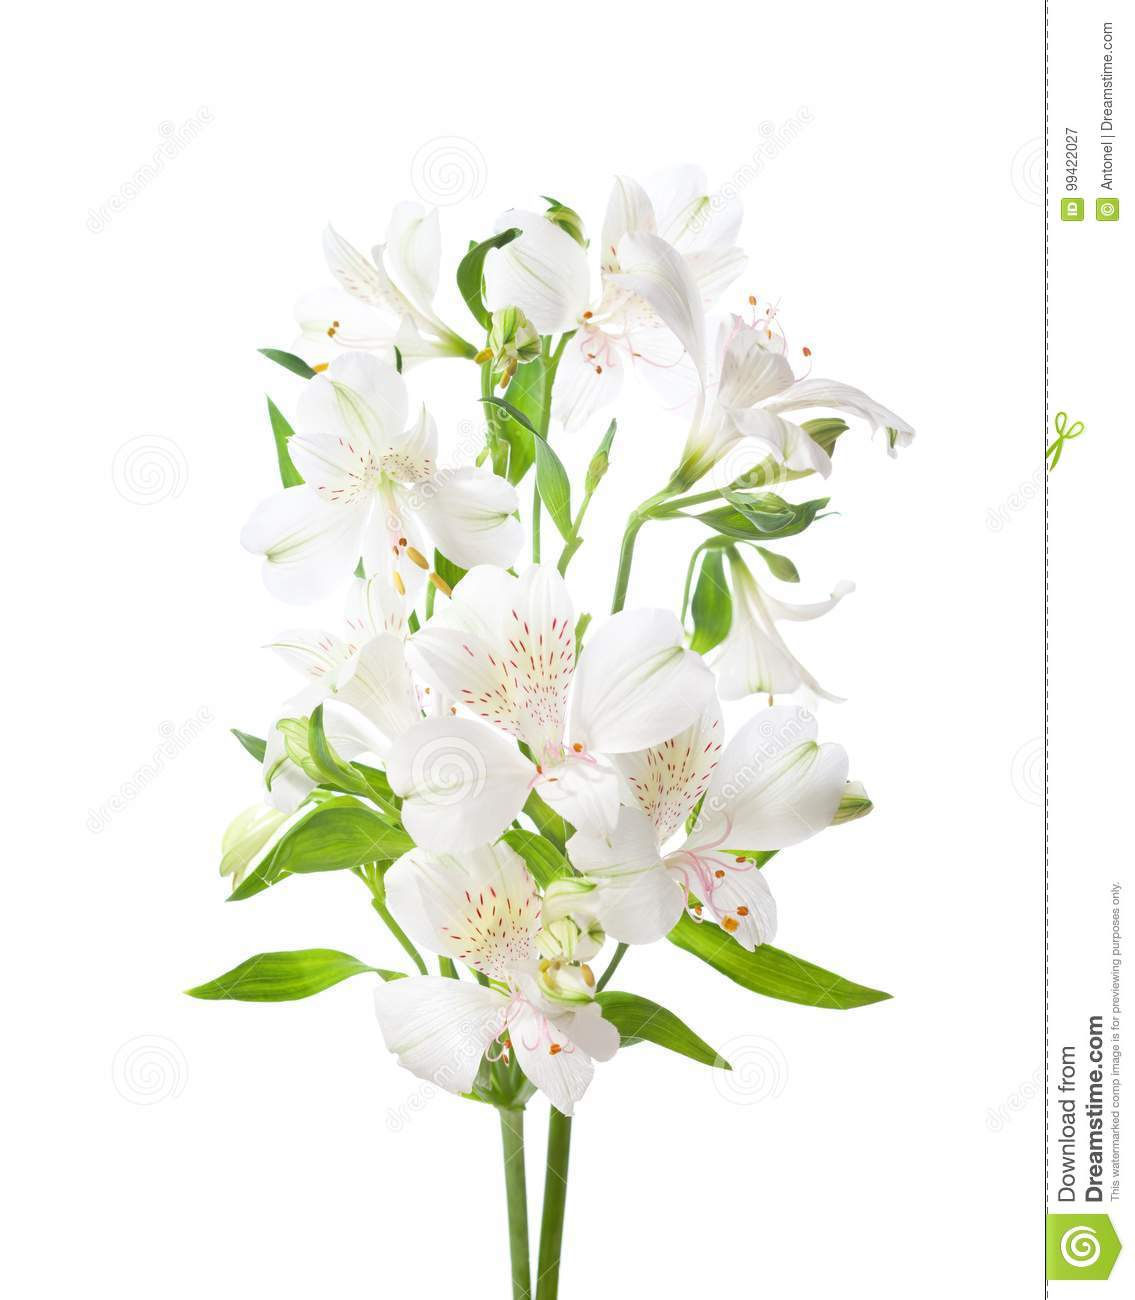 White alstroemeria flowers isolated on white background stock image download white alstroemeria flowers isolated on white background stock image image of color fragment mightylinksfo